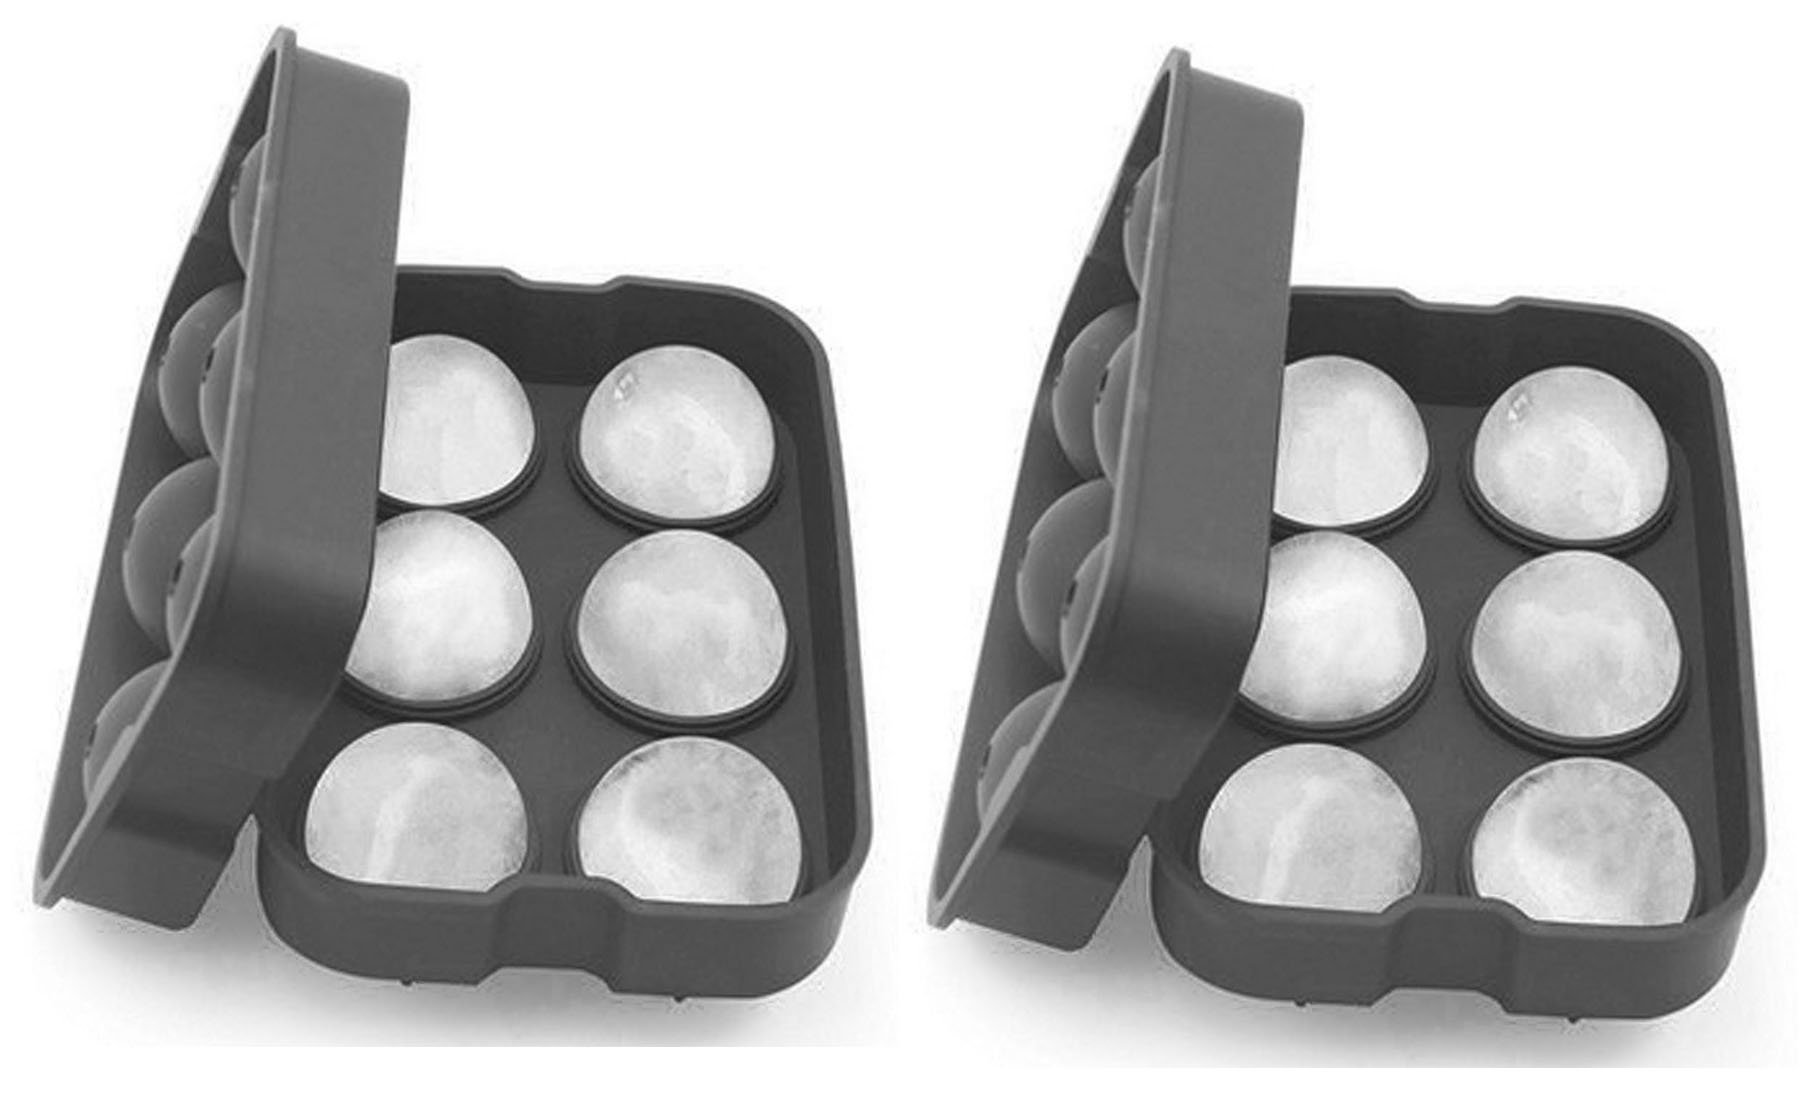 SimplexSilicone Premium Ice Ball Maker Mold - 4.5cm Ice Balls - Silicone Ice Sphere Tray - Enjoy Chilled Drinks (Whiskey, Cocktail, Coffee, Tea, Water) Without Dilution - Set of 2 (Ocean Grey)